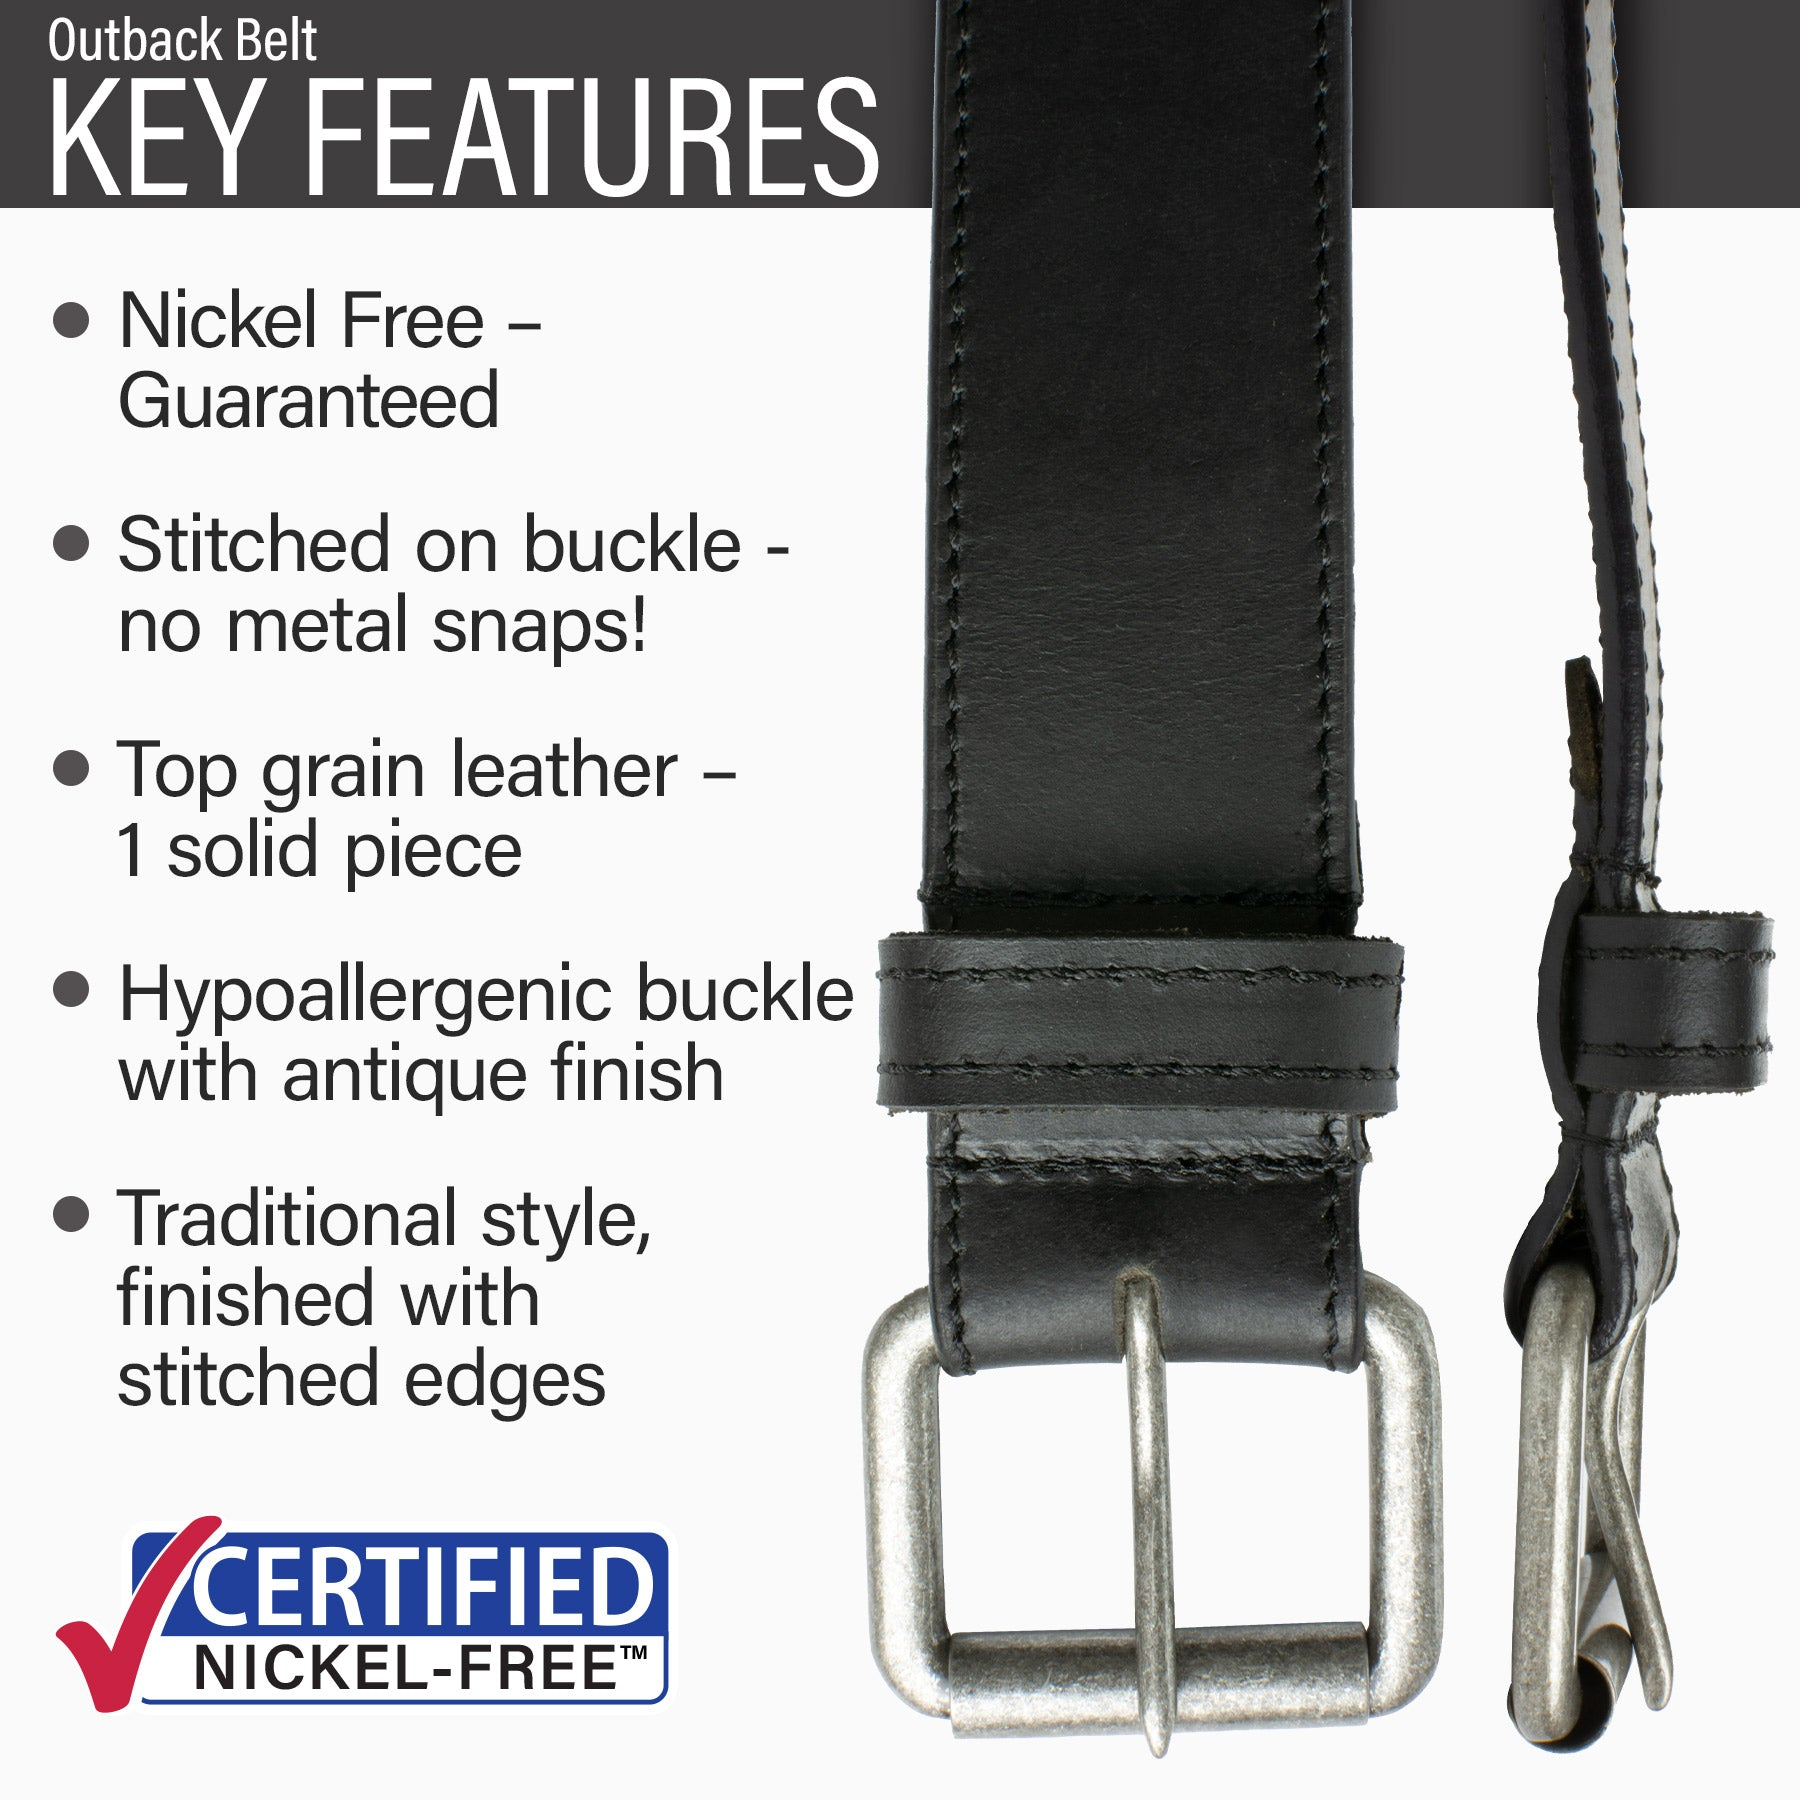 Key features of Outback Nickel Free Black Belt | Hypoallergenic buckle, stitched on buckle, full grain leather, traditional style.